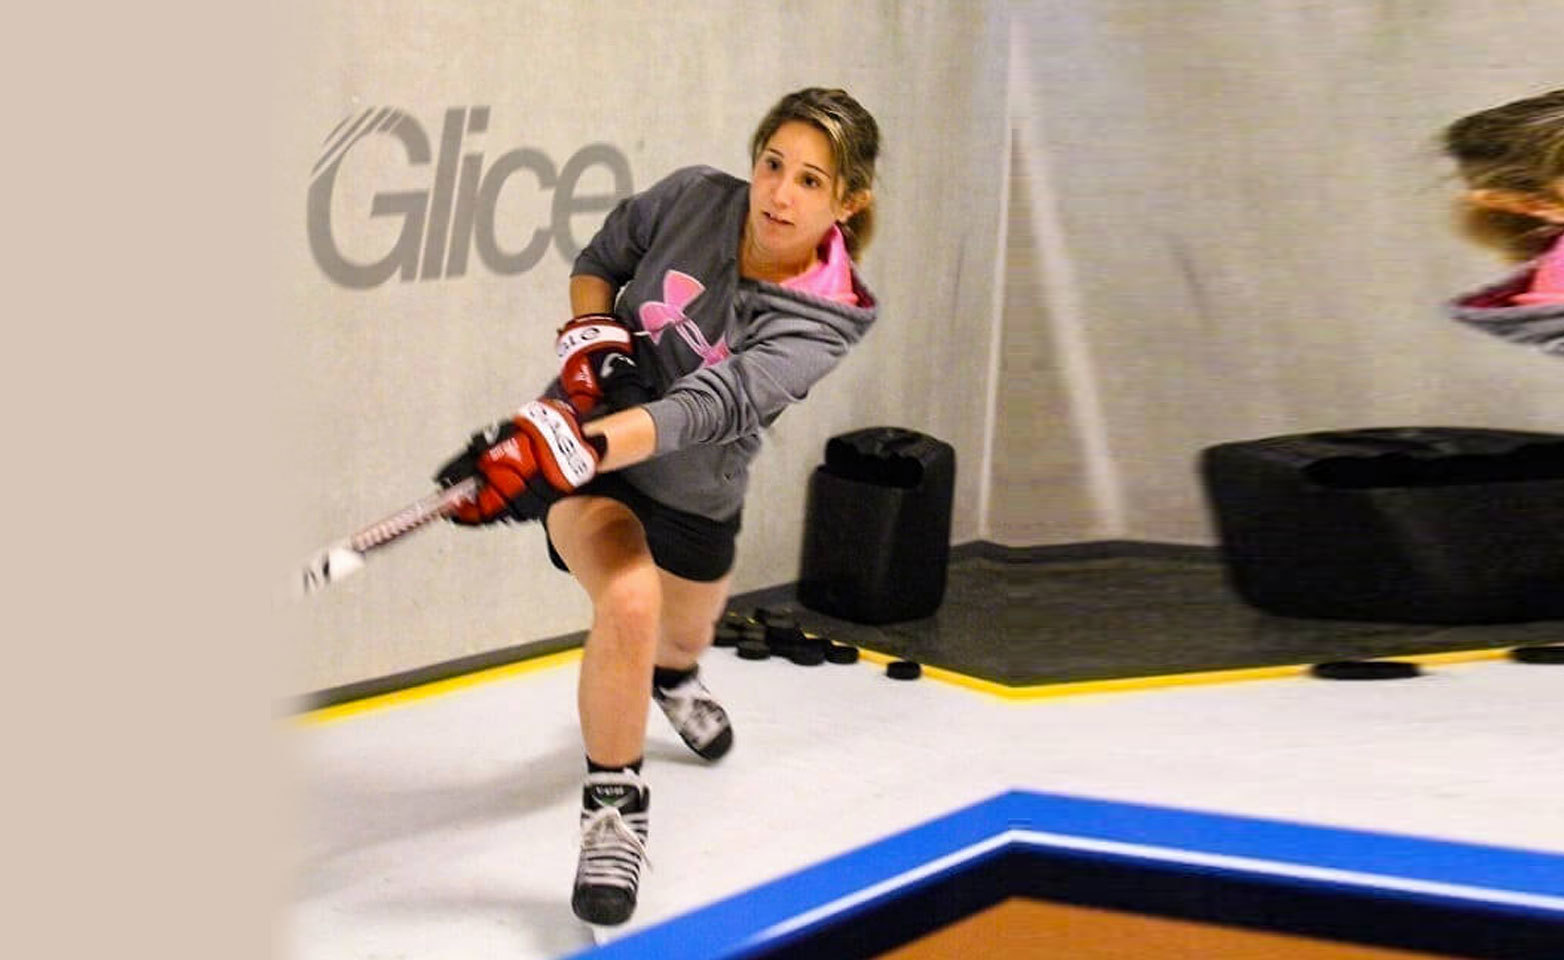 Female hockey player practicing on synthetic ice pad